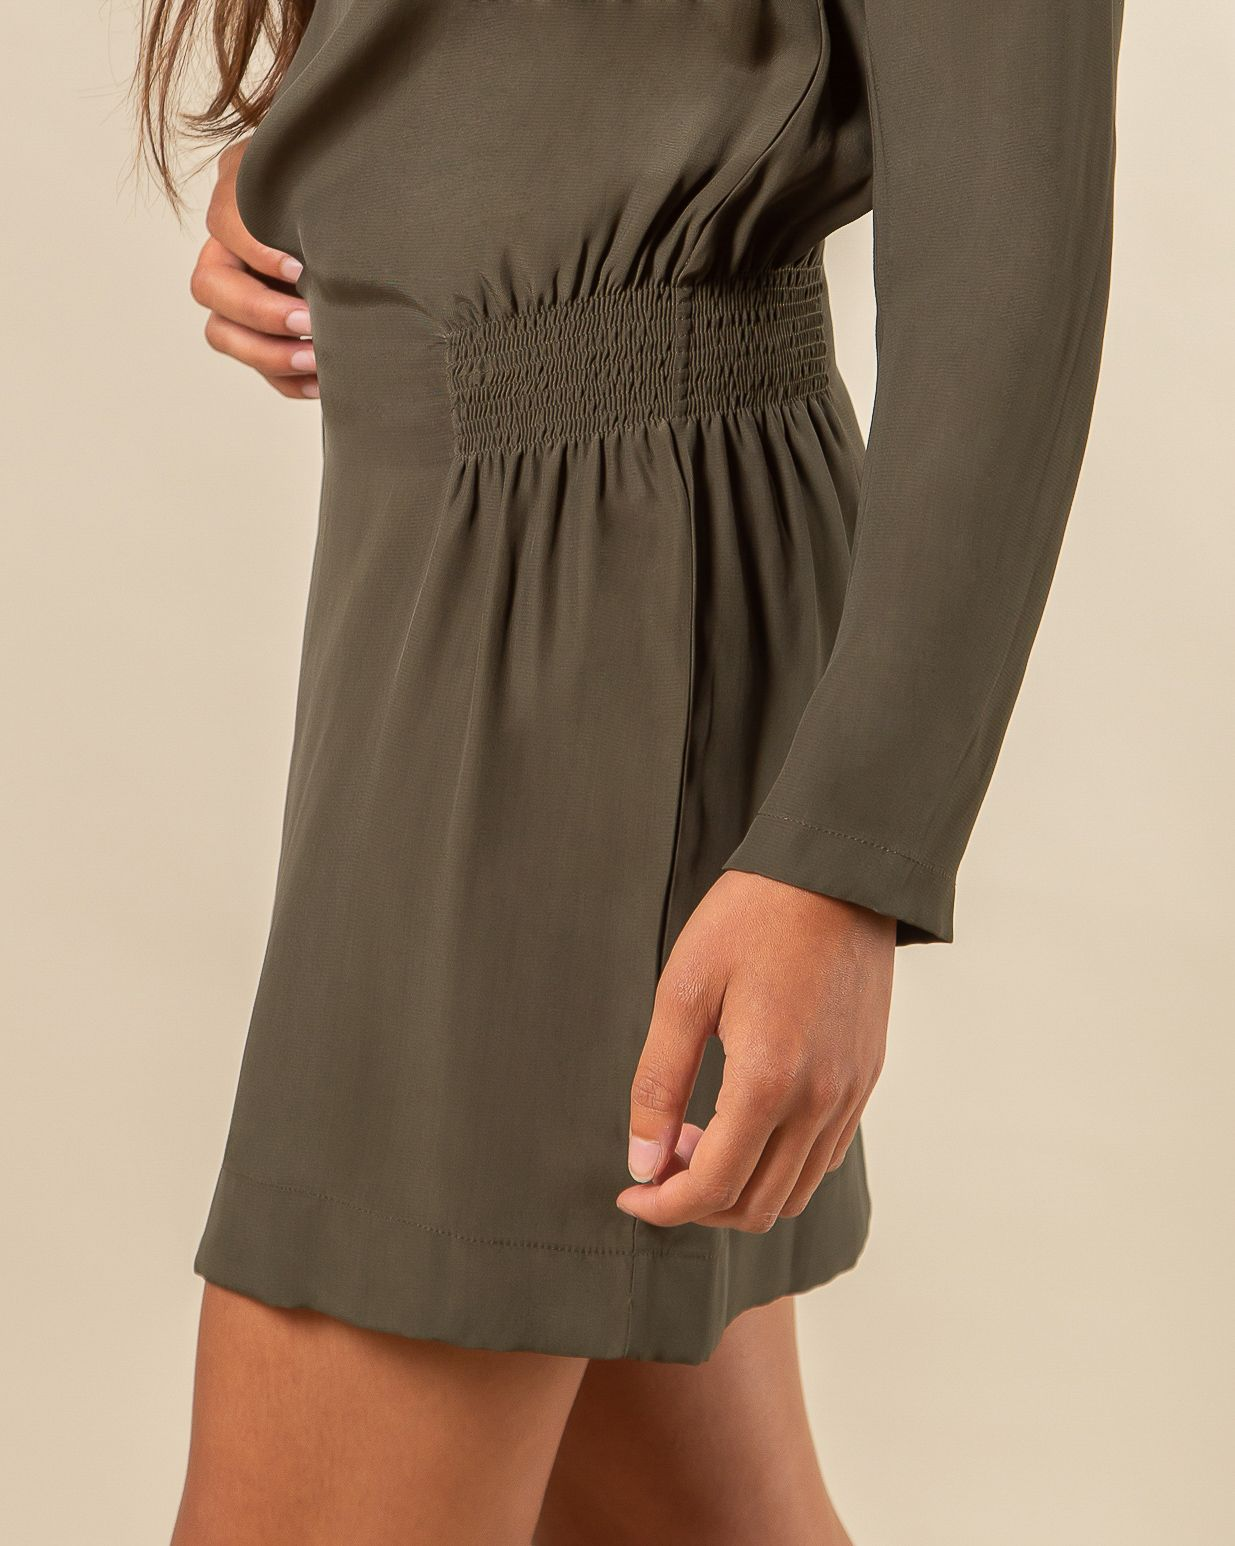 OKI SHORT DRESS